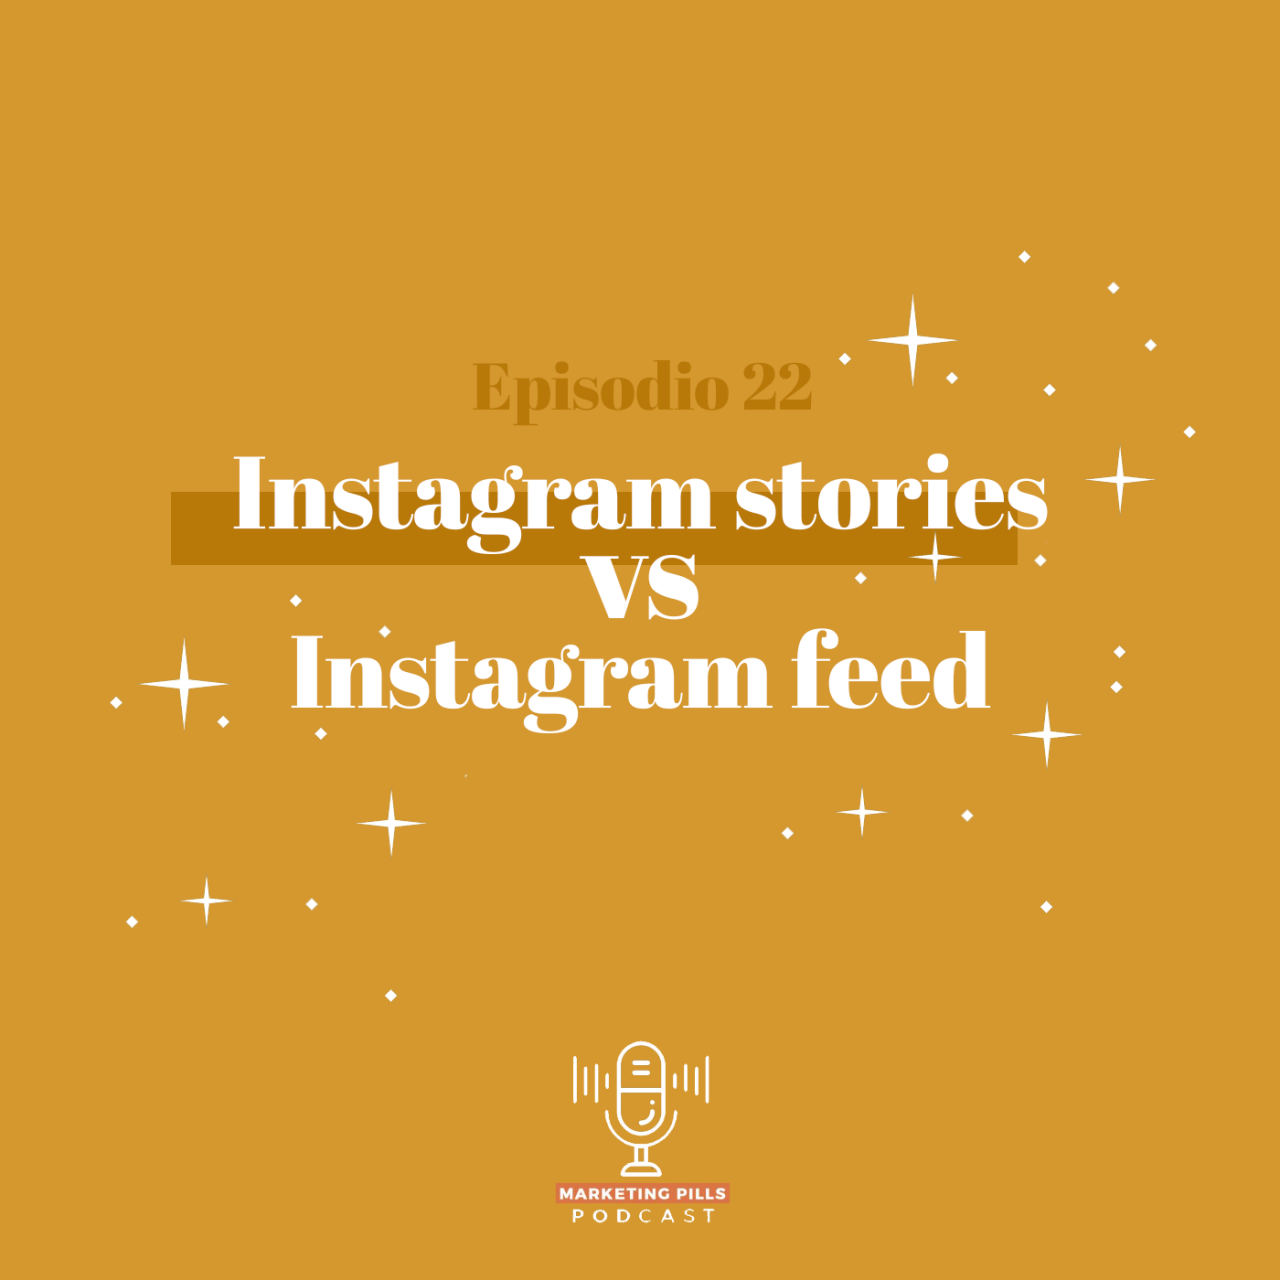 [PODCAST] Instagram feed vs Instagram Stories